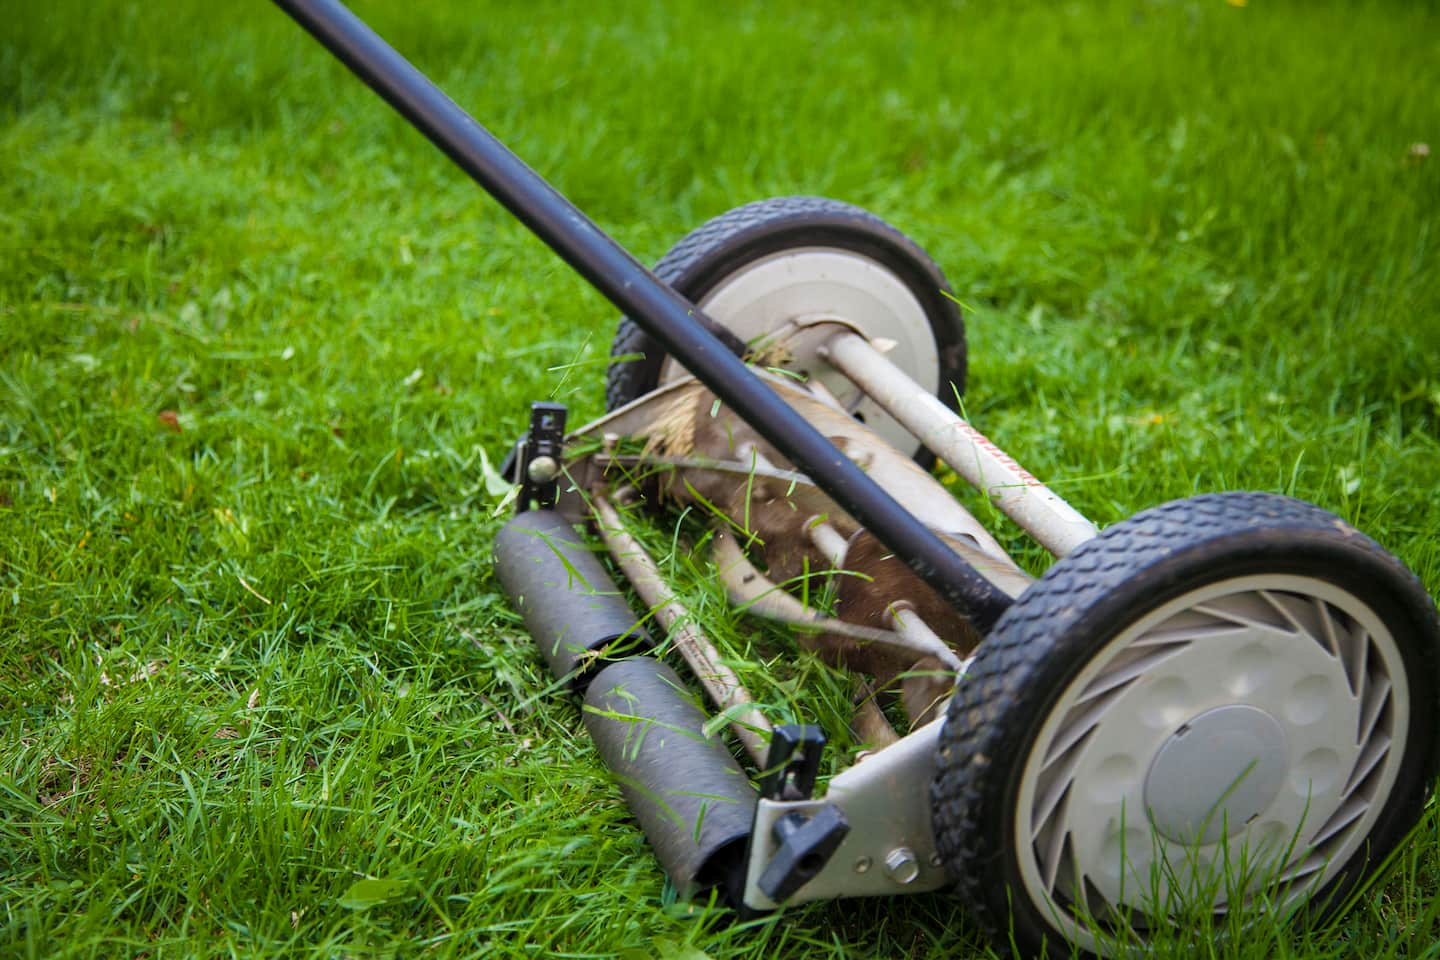 lawn mower won t start troubleshooting tips to try